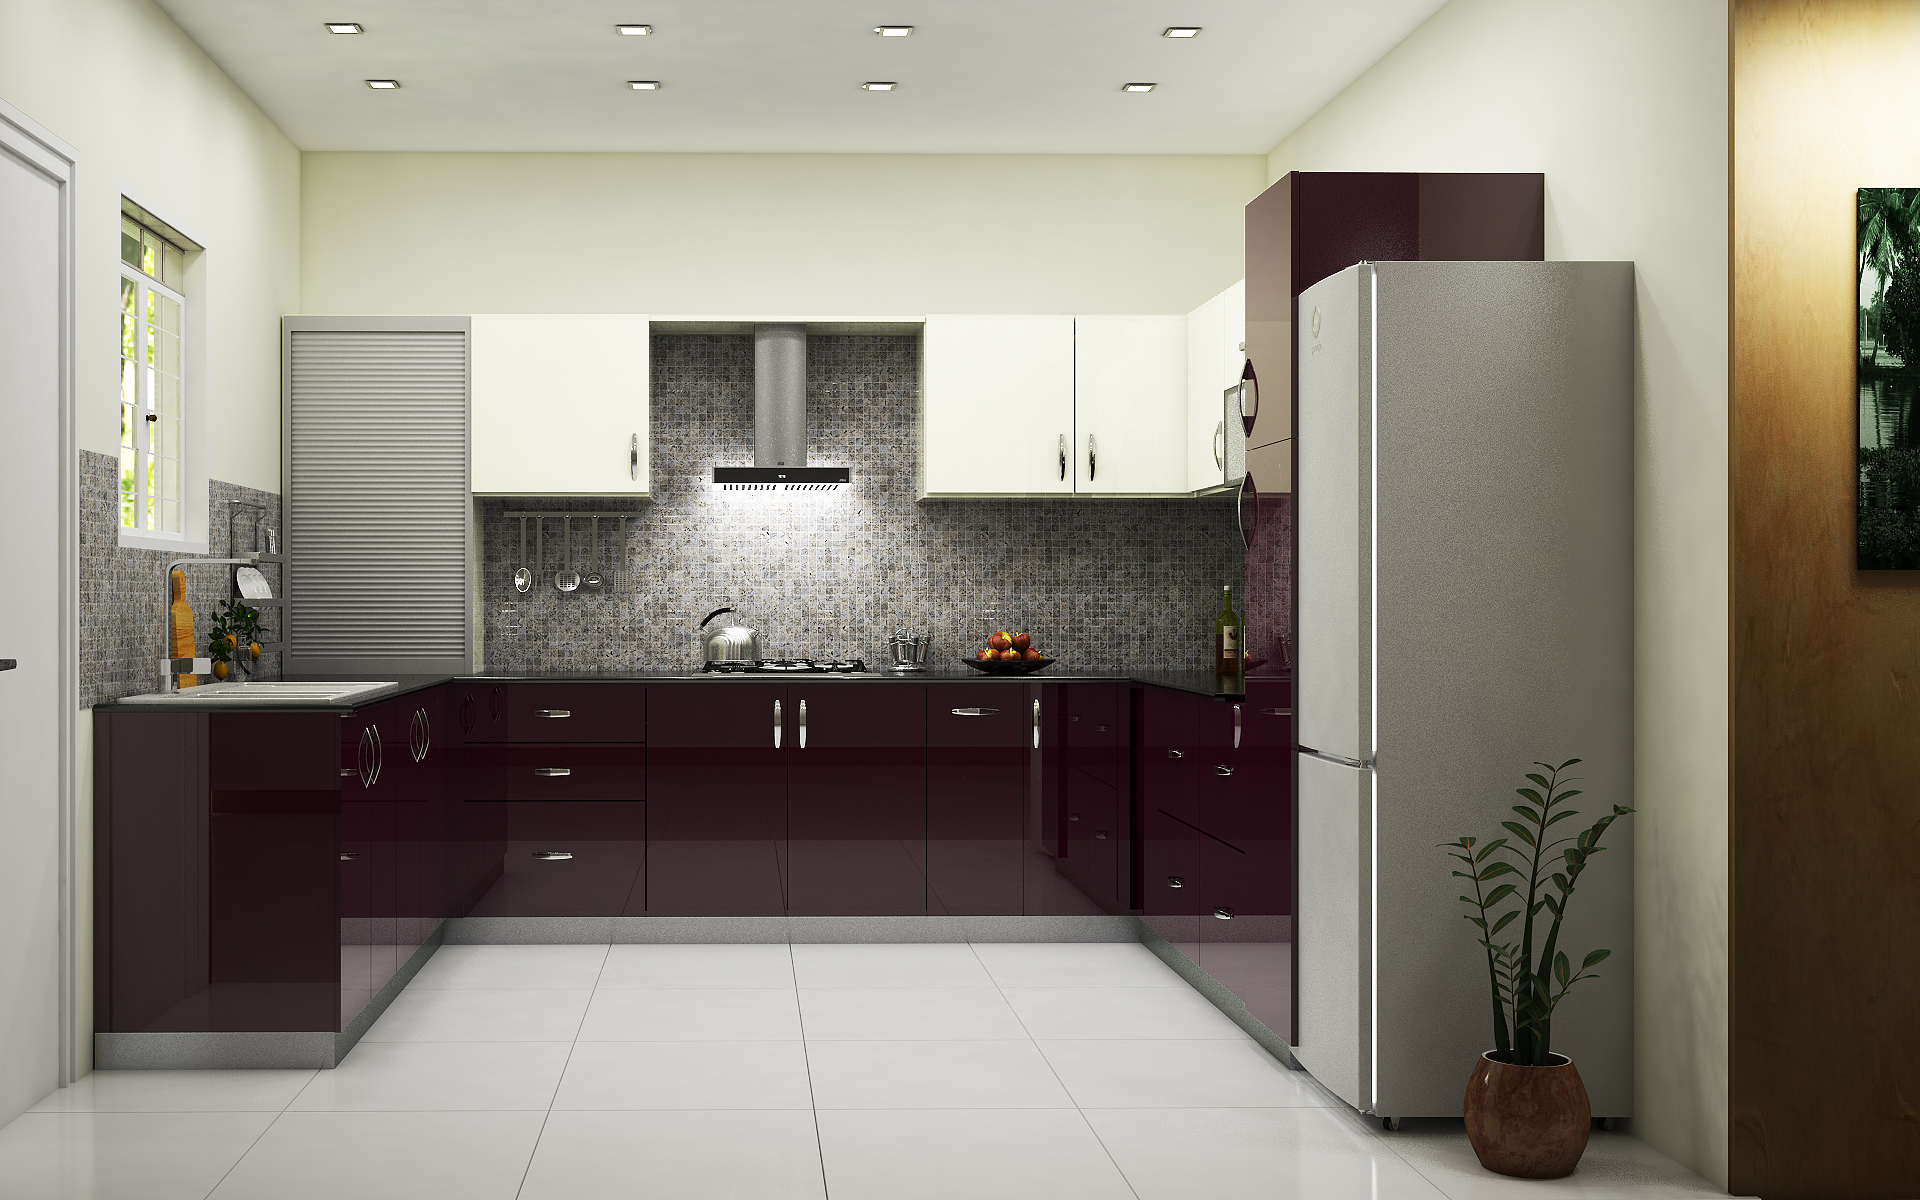 indian modular kitchen designs for beautiful and designer kitchen select modular kitchen 4656